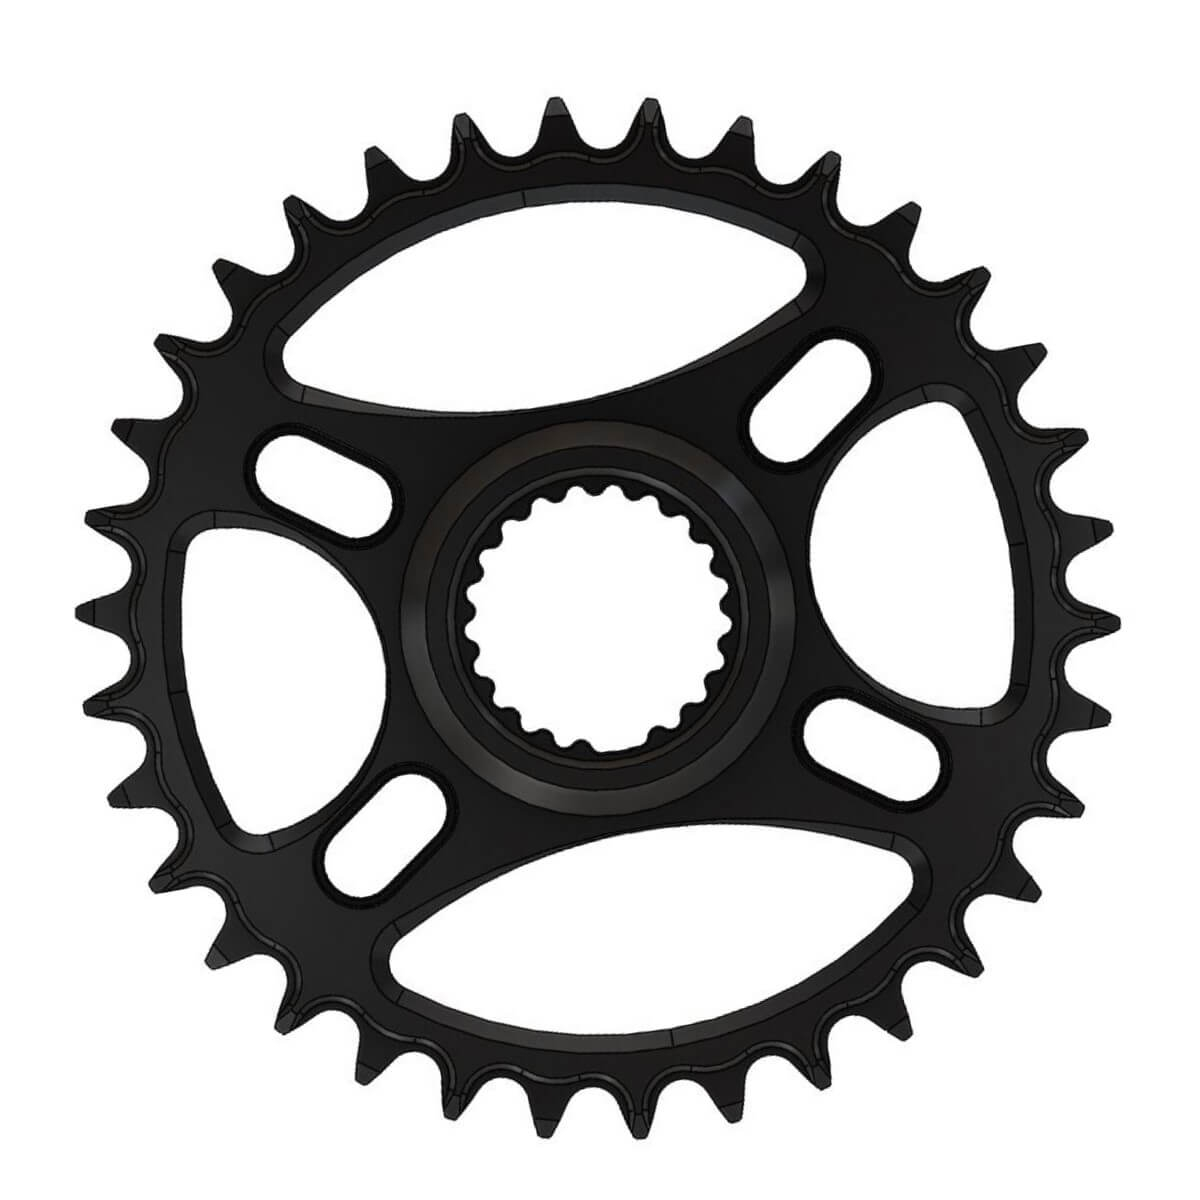 C24 Pilo Chainring Narrow Wide 36T for Shimano direct. Fits XTR FC-M9100-1 XC Race crank 1x12-speed.